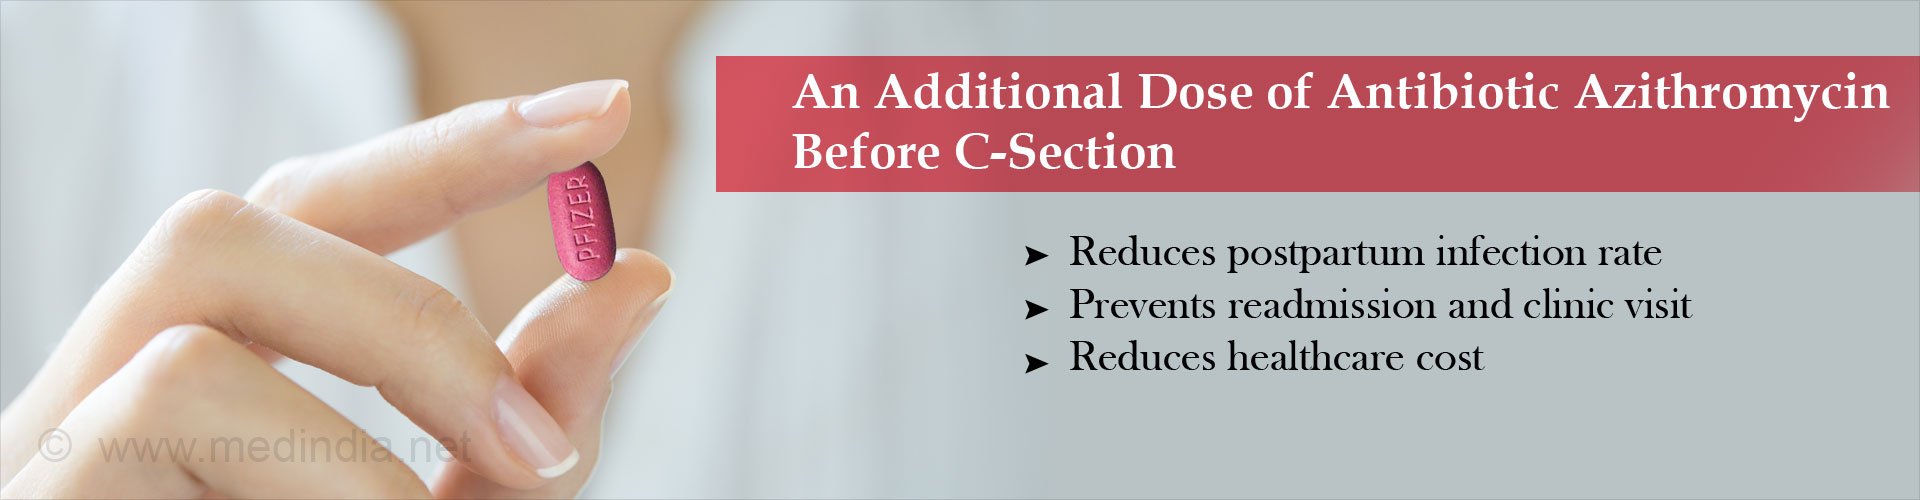 Antibiotic Azithromycin Reduces C-section Infection by Half